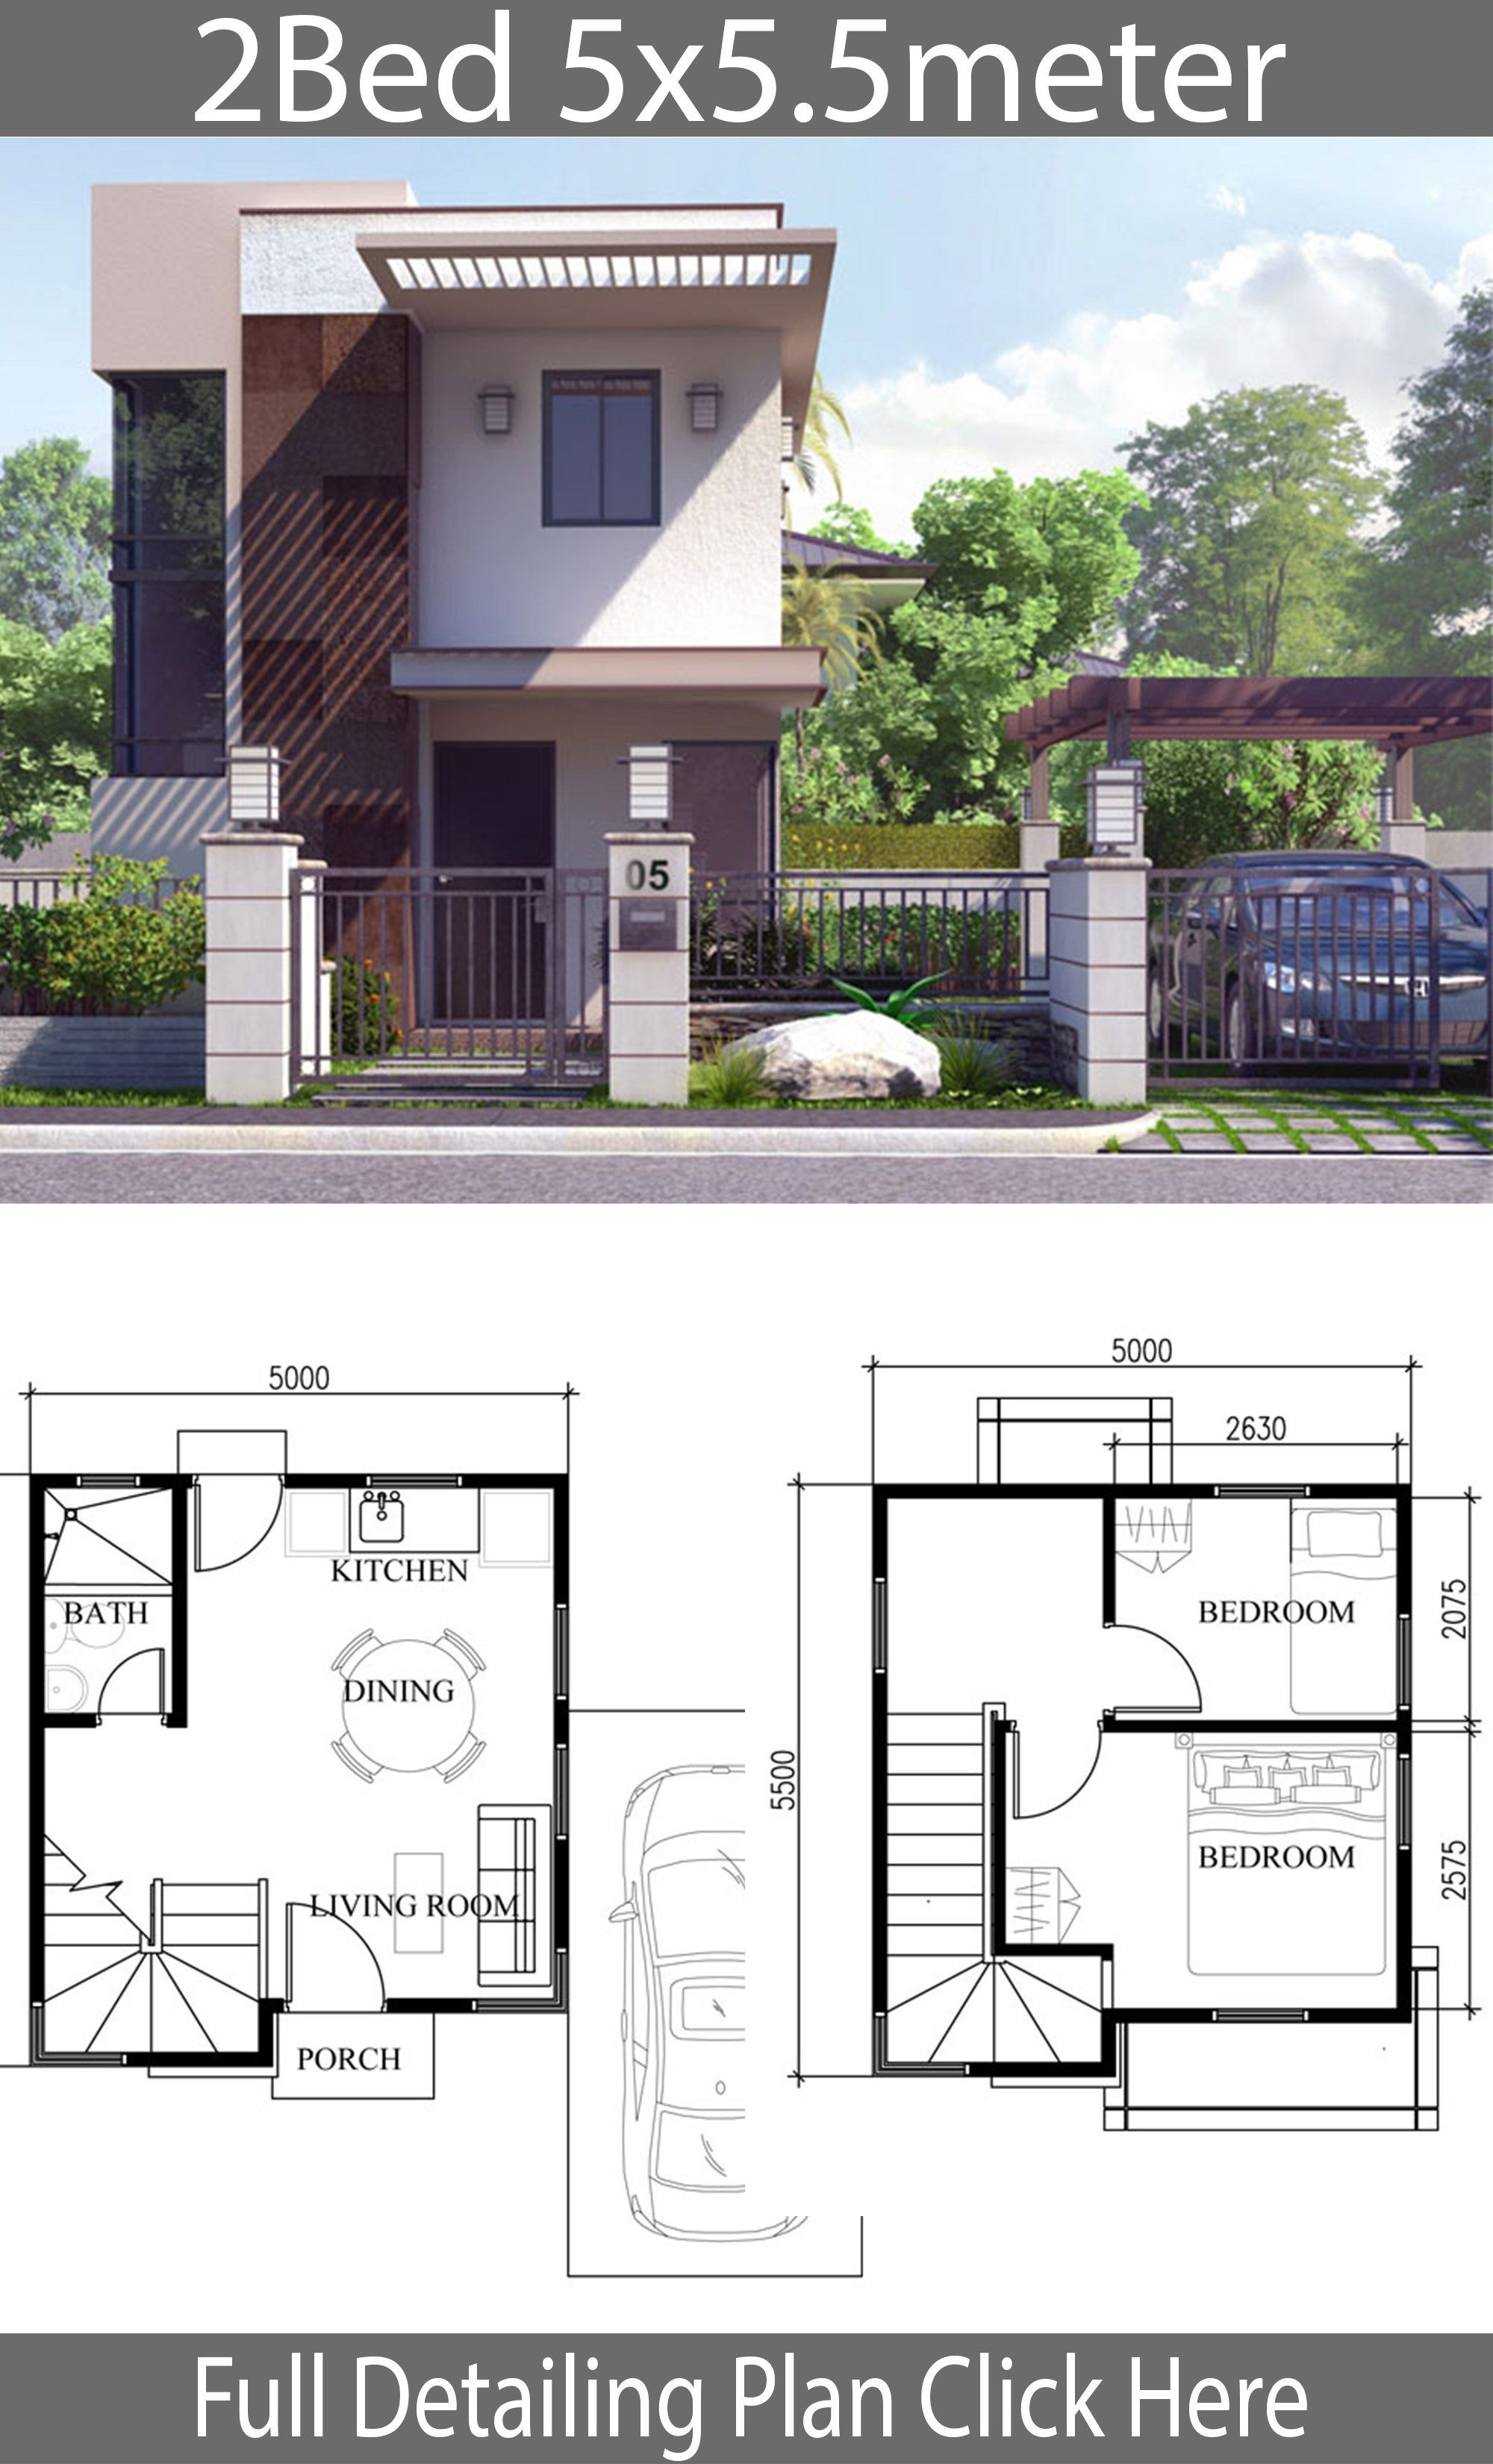 Floor Plans for Small Houses Inspirational Small Home Design Plan 5x5 5m with 2 Bedrooms